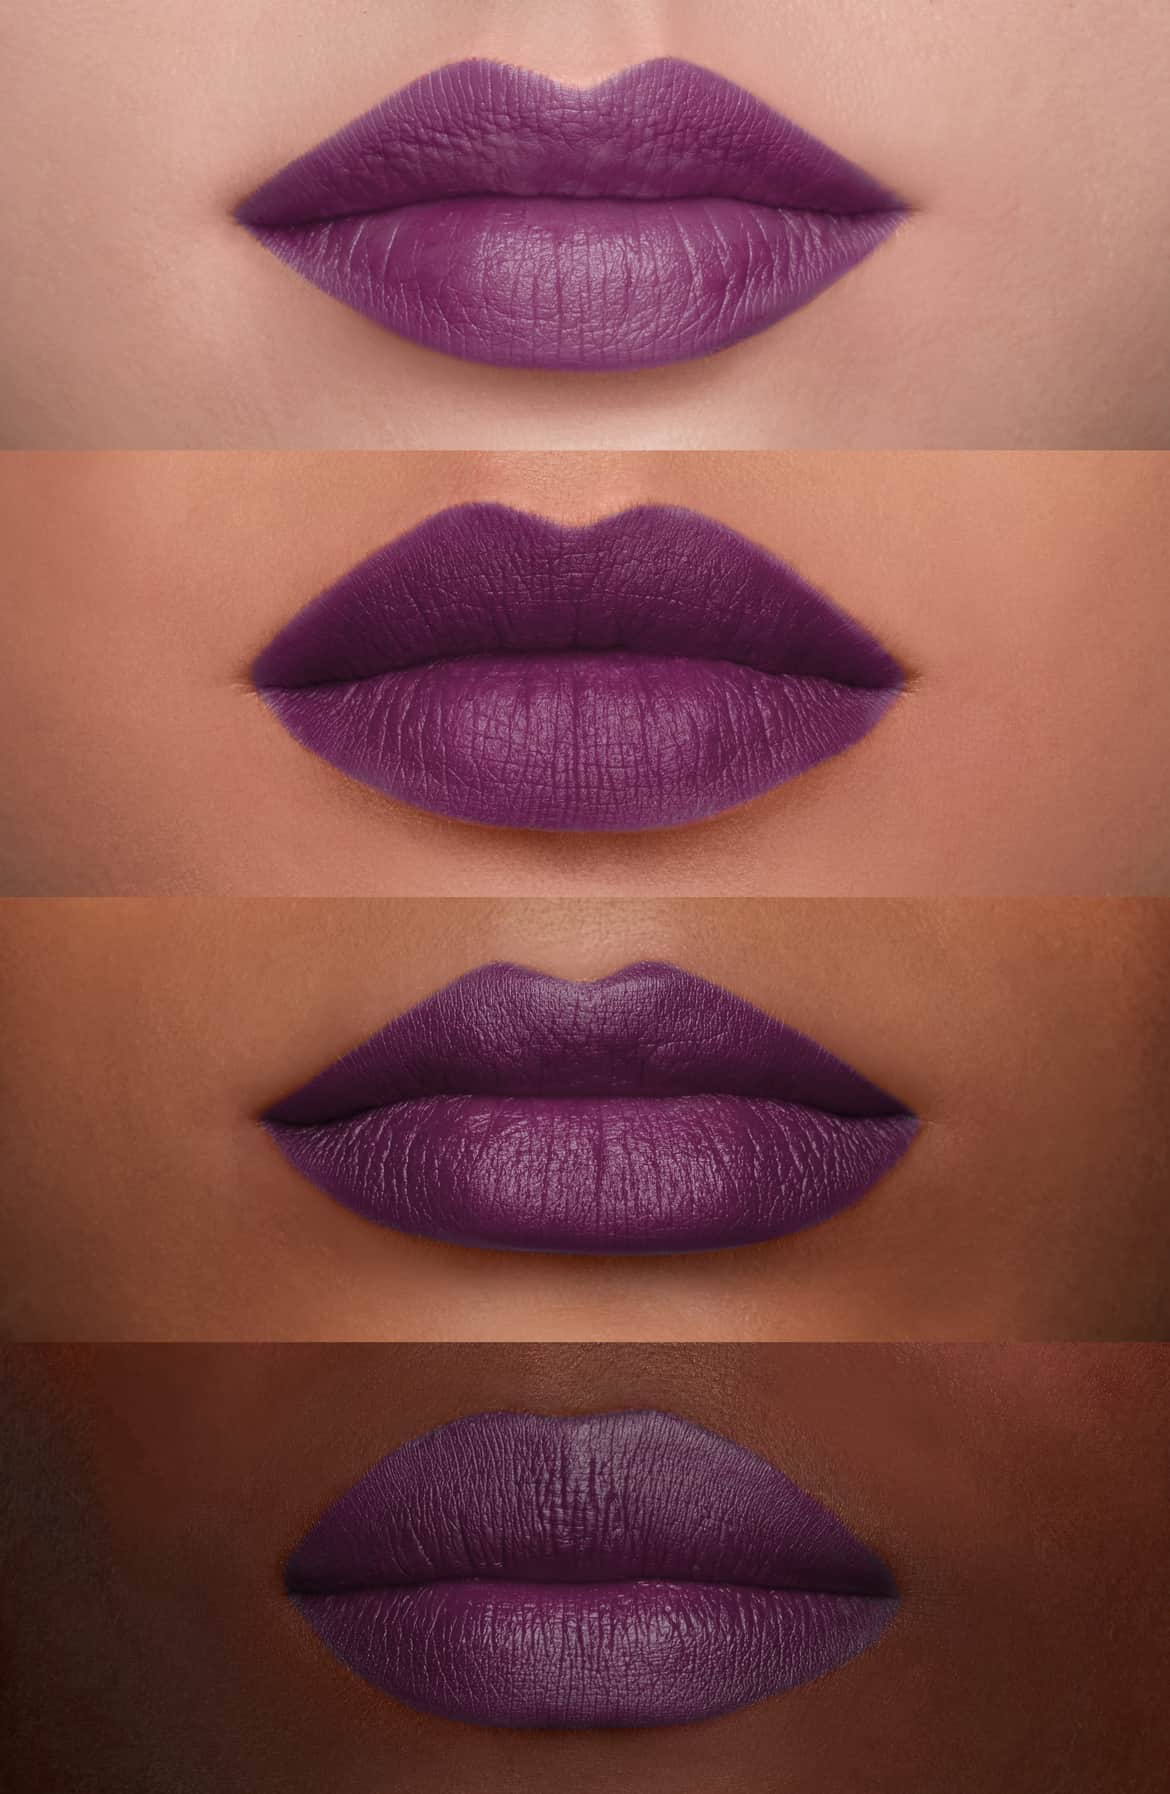 d65058f9 4b3d 4146 aca3 225bbd068951 - How to Find a Lipstick to Look Amazing on You